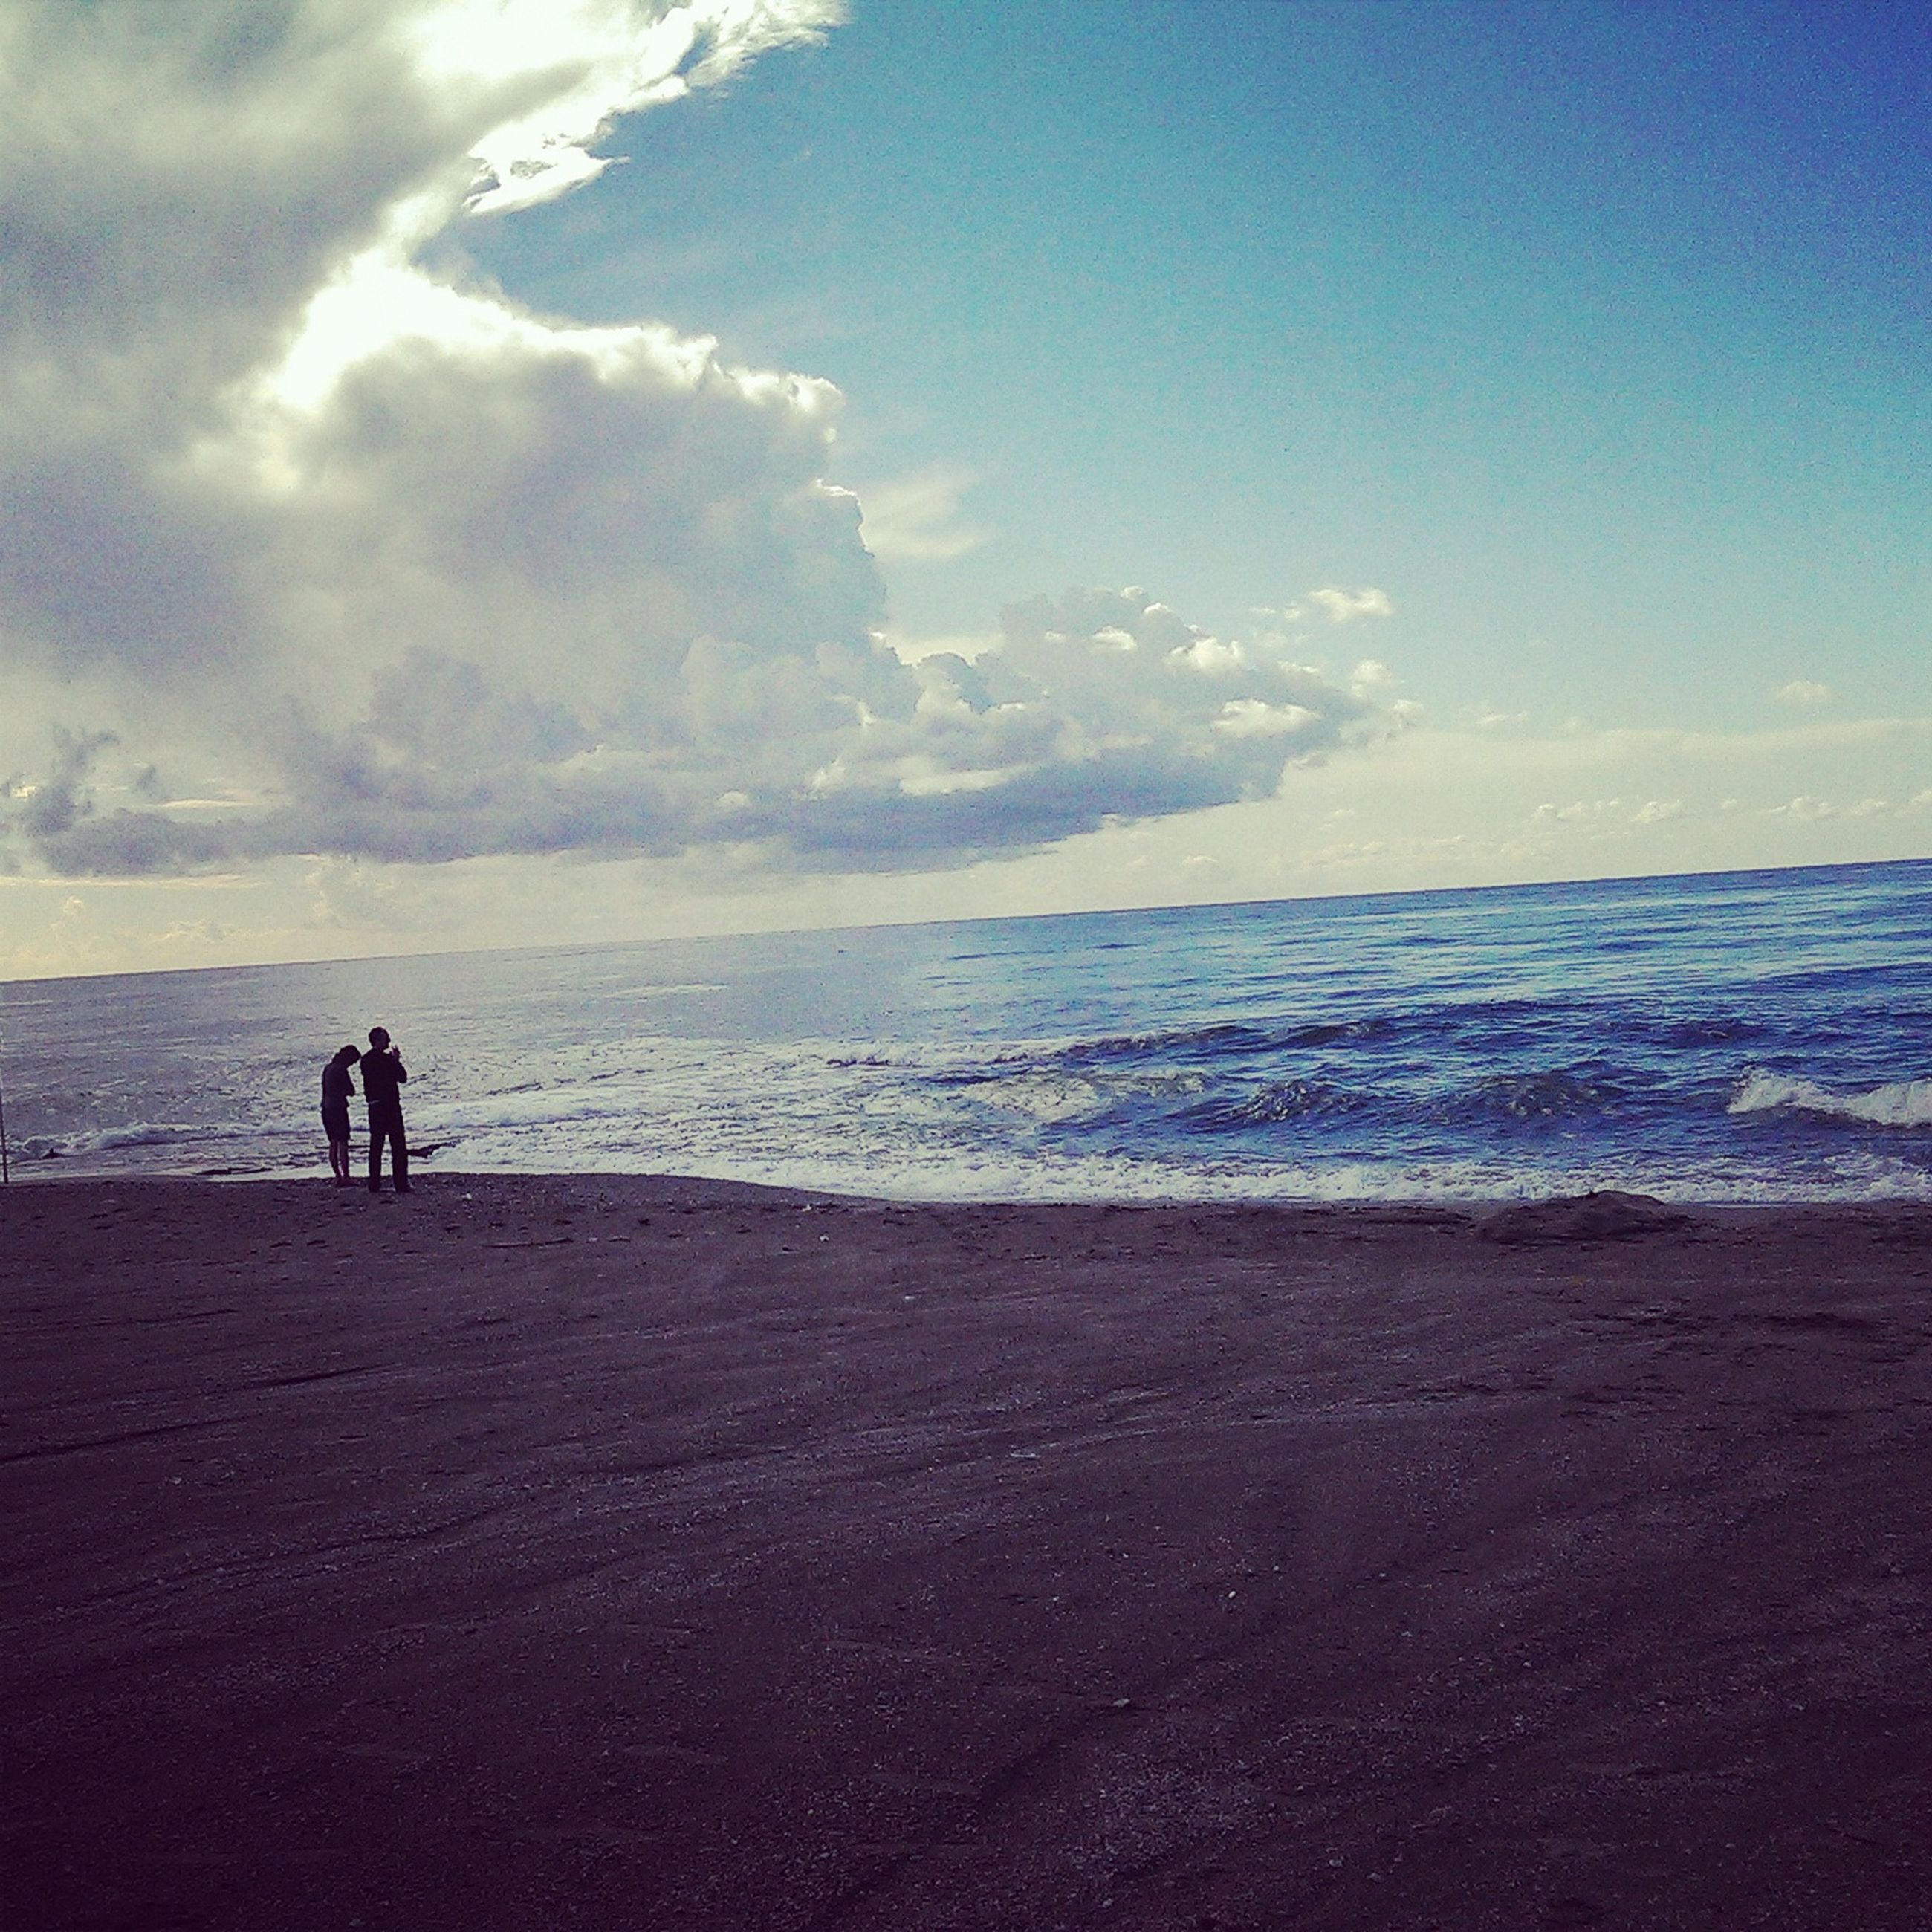 sea, horizon over water, beach, water, sky, lifestyles, leisure activity, scenics, shore, men, tranquil scene, beauty in nature, full length, tranquility, cloud - sky, vacations, nature, silhouette